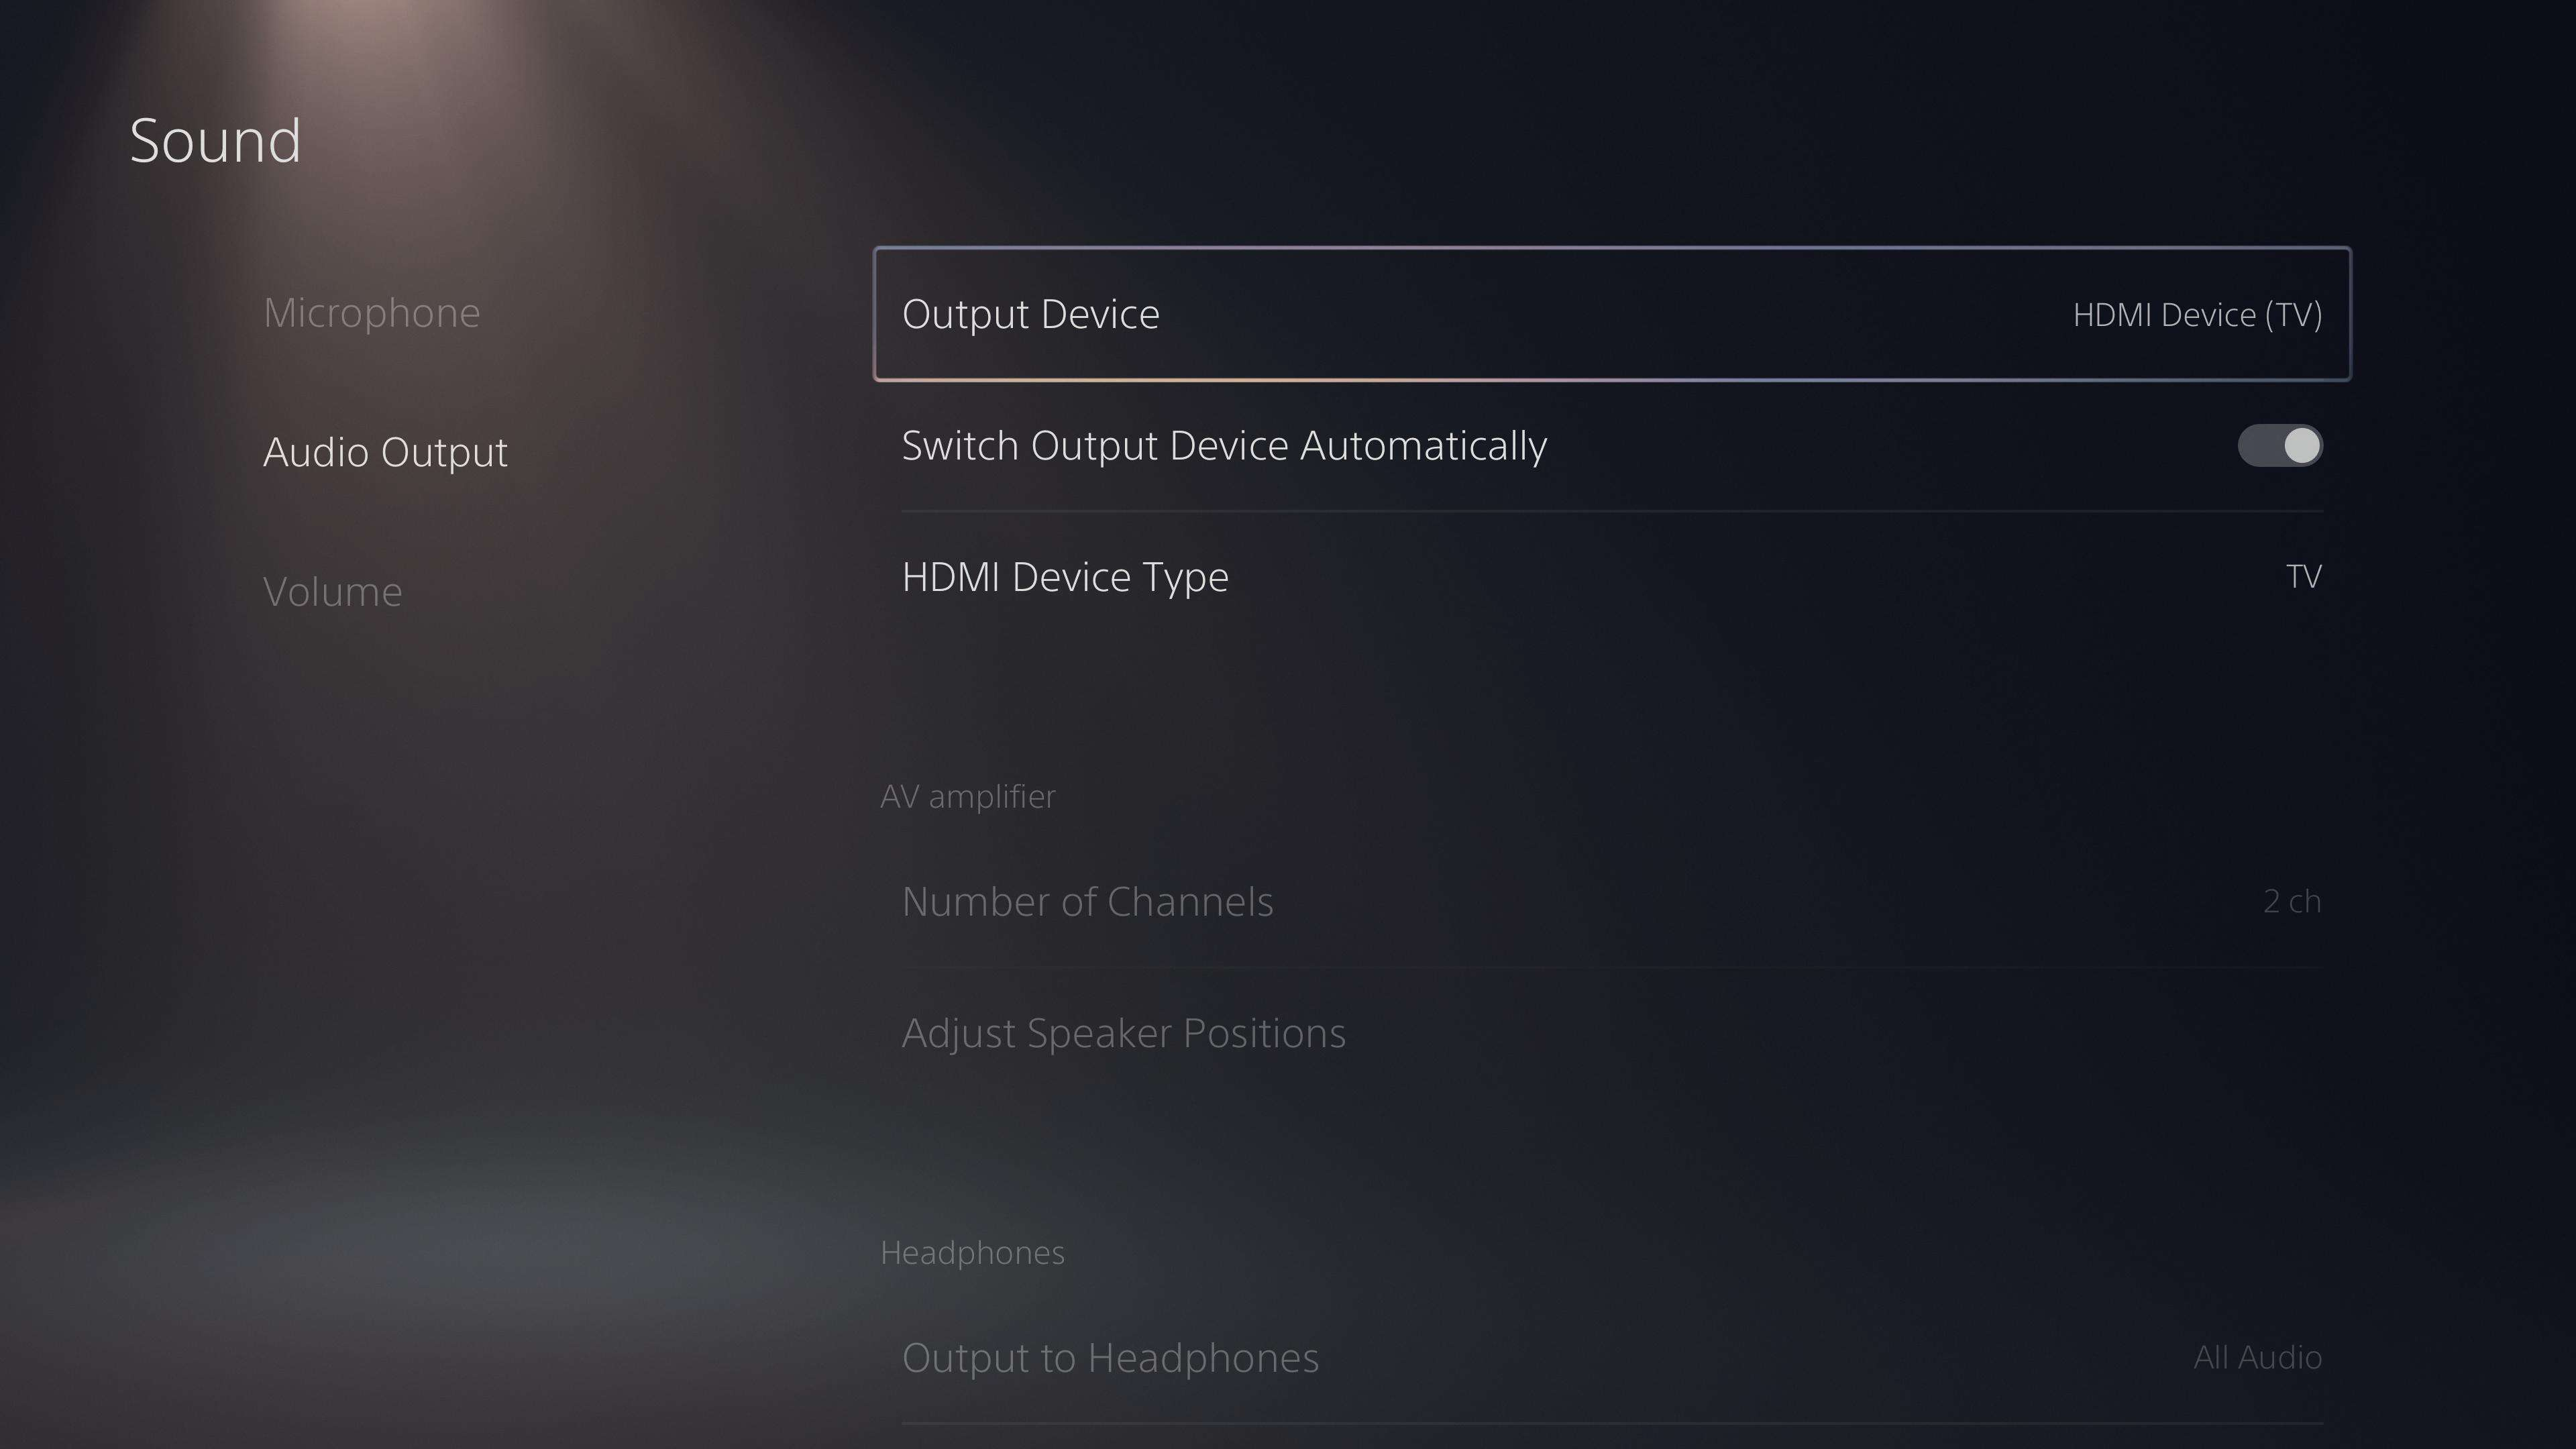 Output Device in the Audio Output menu